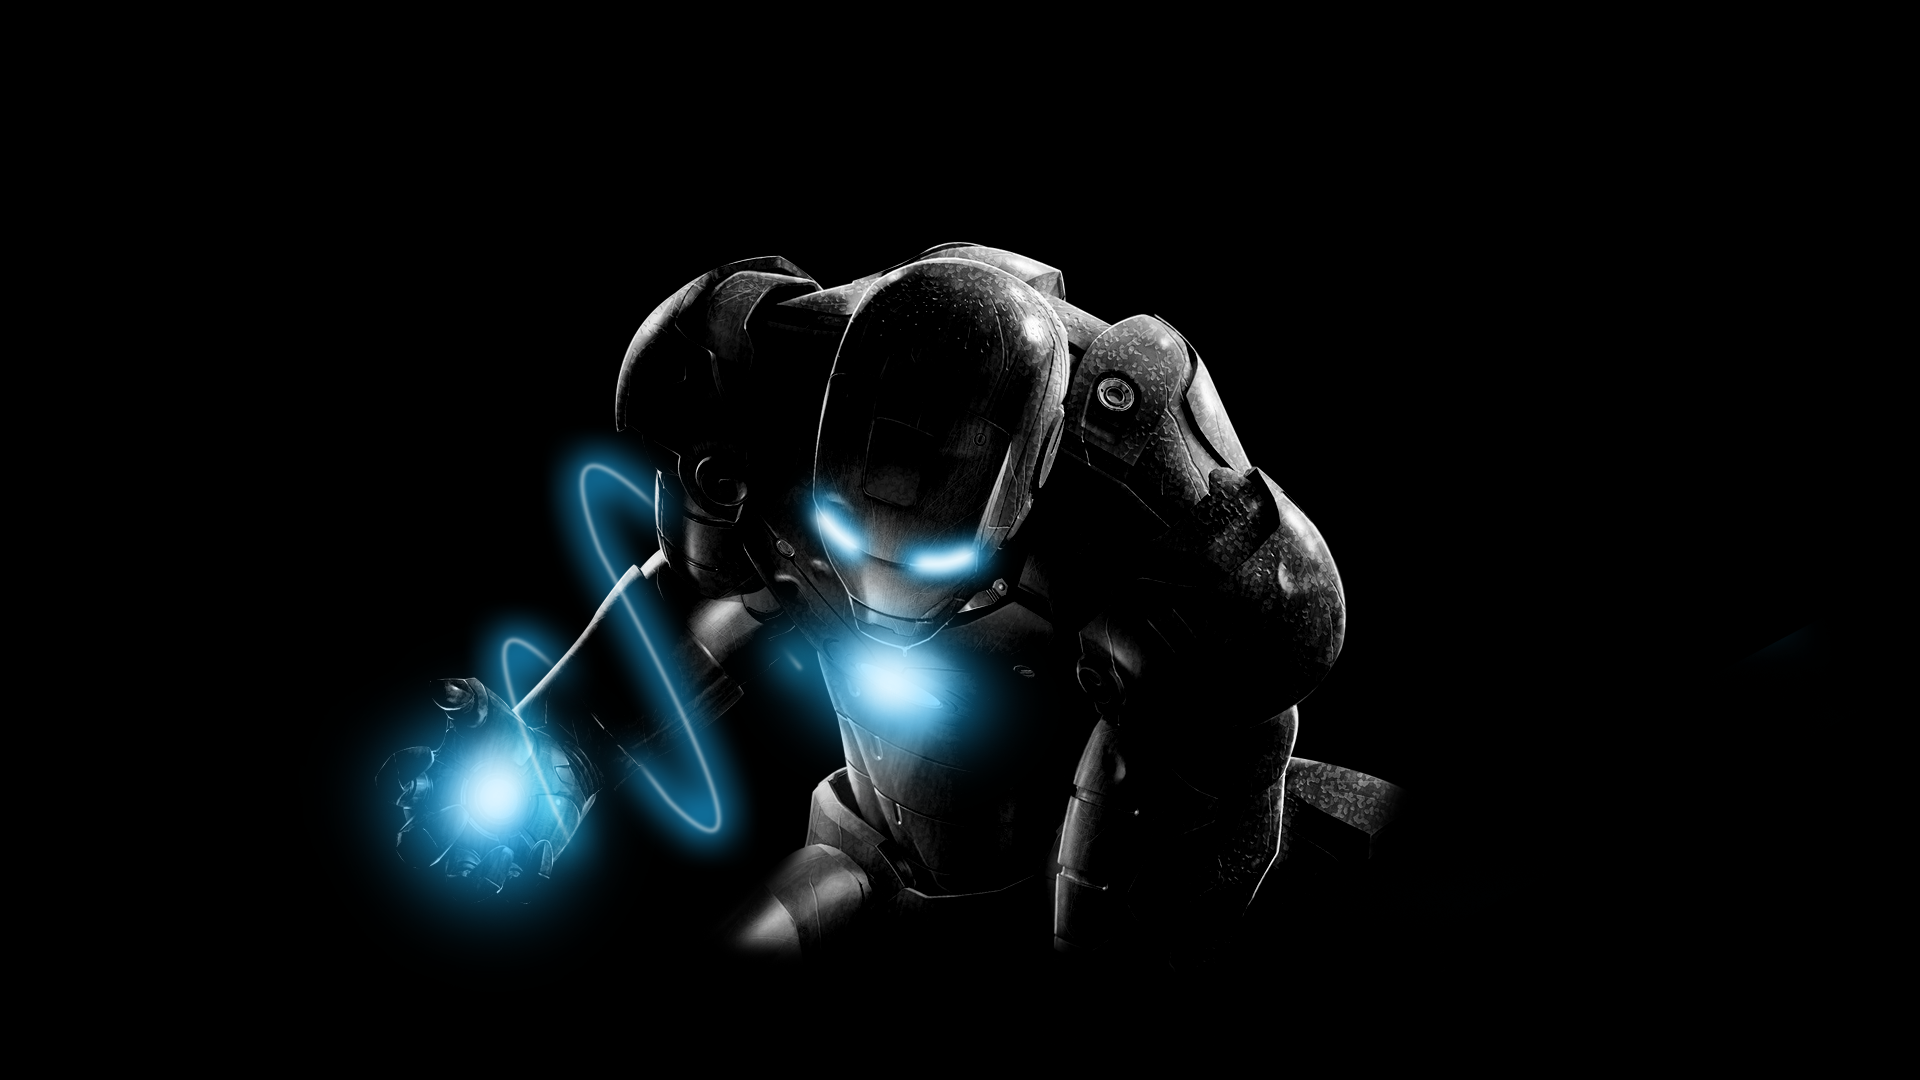 1920x1080 Dark Iron Man desktop PC and Mac wallpaper 1920x1080